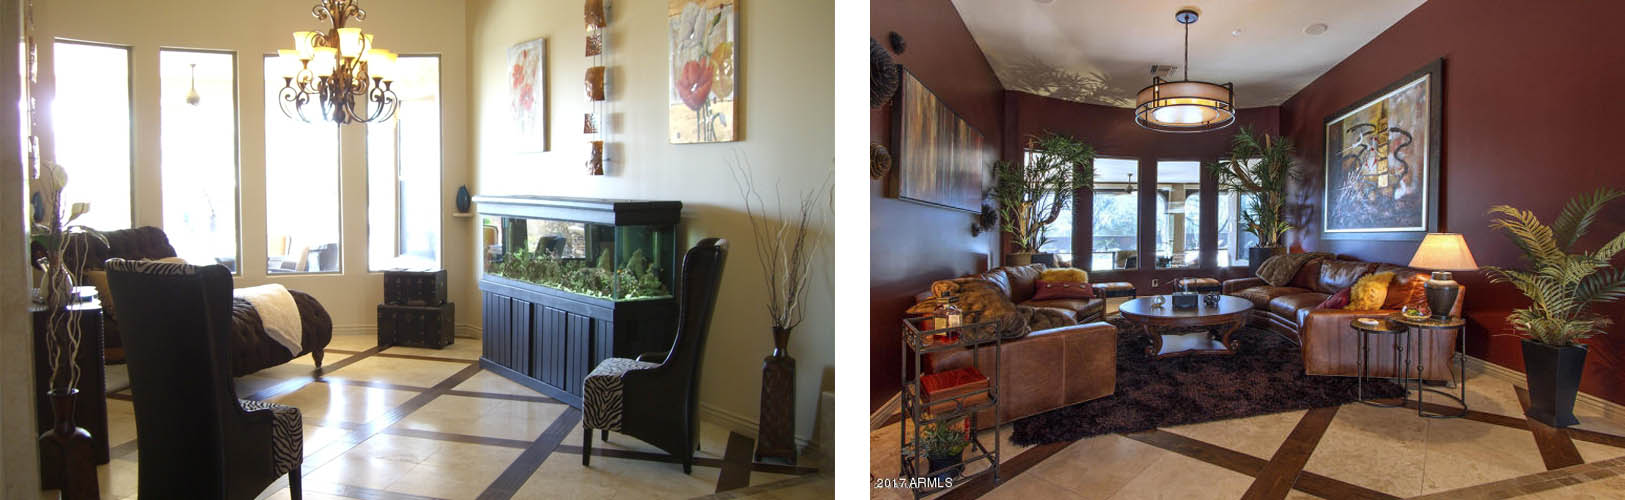 lang living room before - after makeover